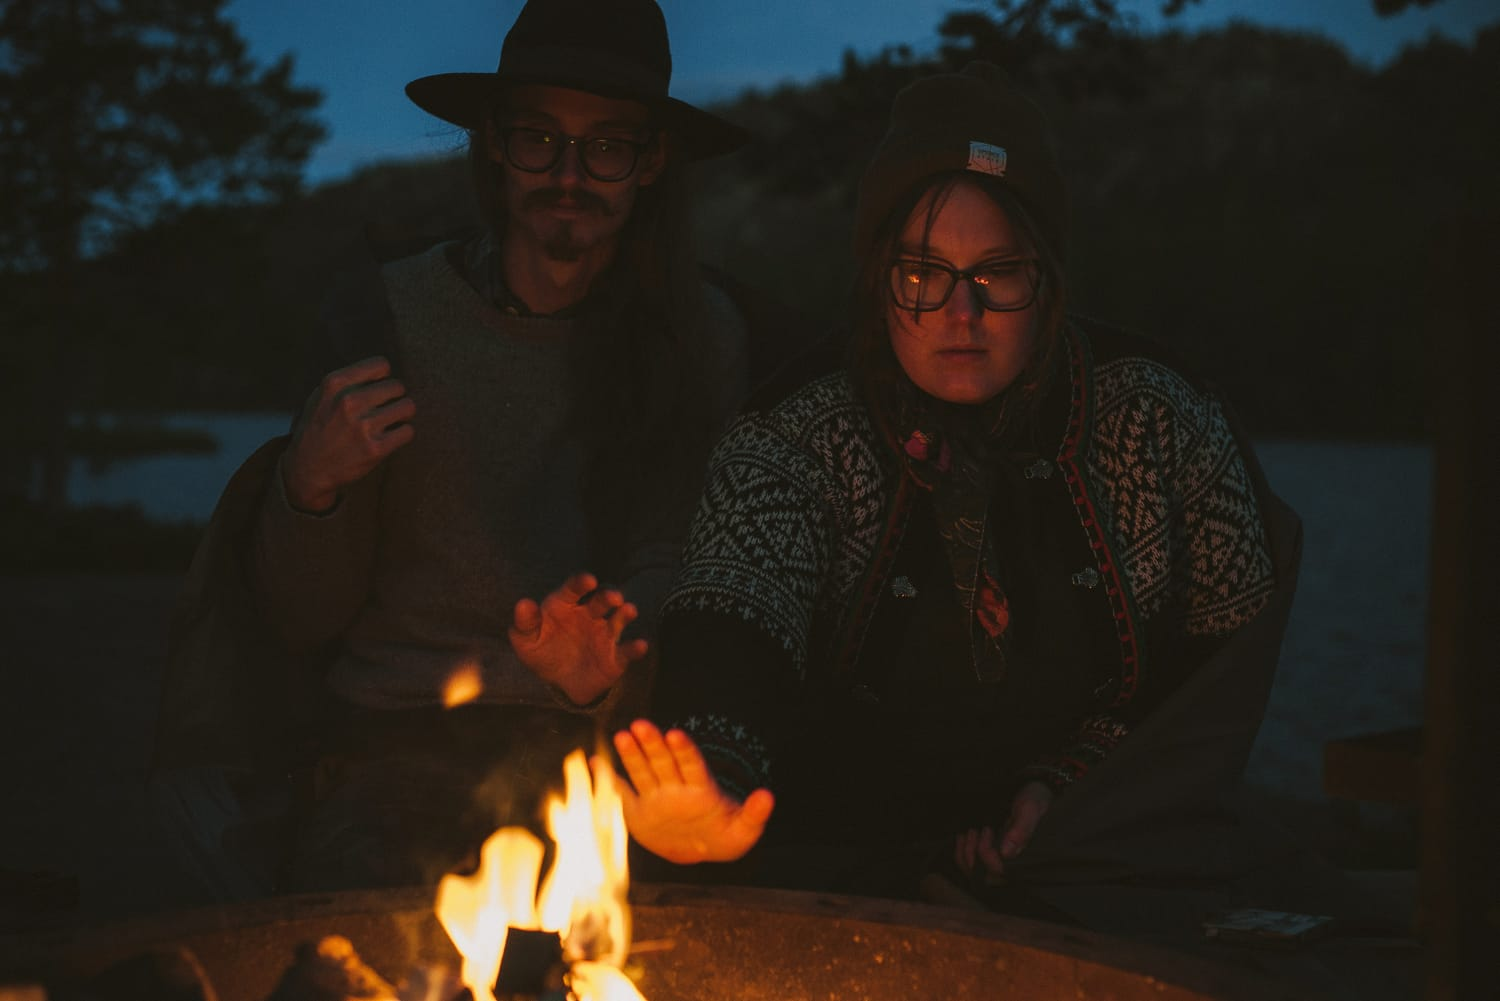 hikers getting warm by a fire at night